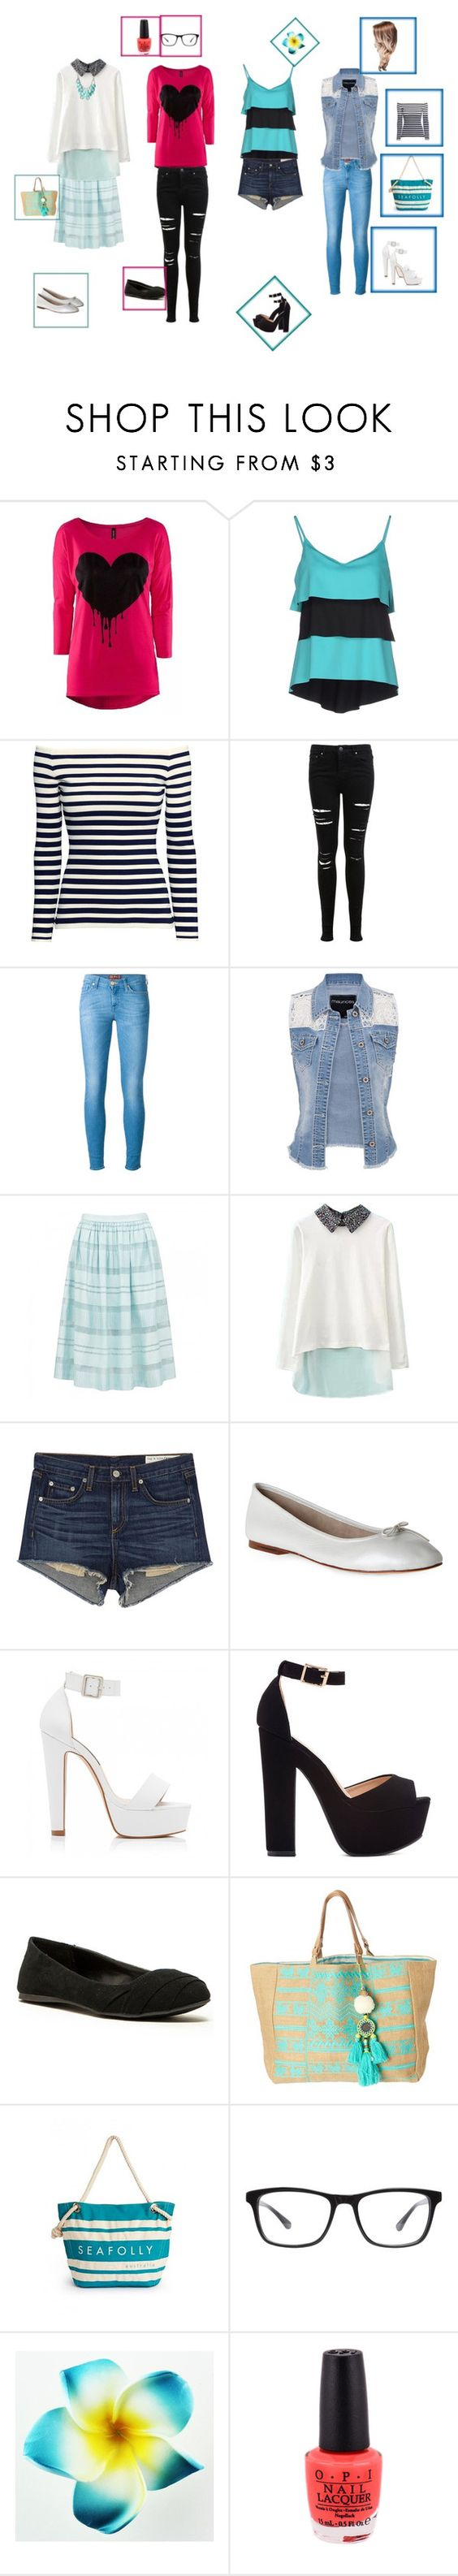 """Wanna Be?"" by justkittn33 ❤ liked on Polyvore featuring FISICO Cristina Ferrari, H&M, Miss Selfridge, 7 For All Mankind, maurices, Forever New, rag & bone/JEAN, Bloch, Qupid and Star Mela"